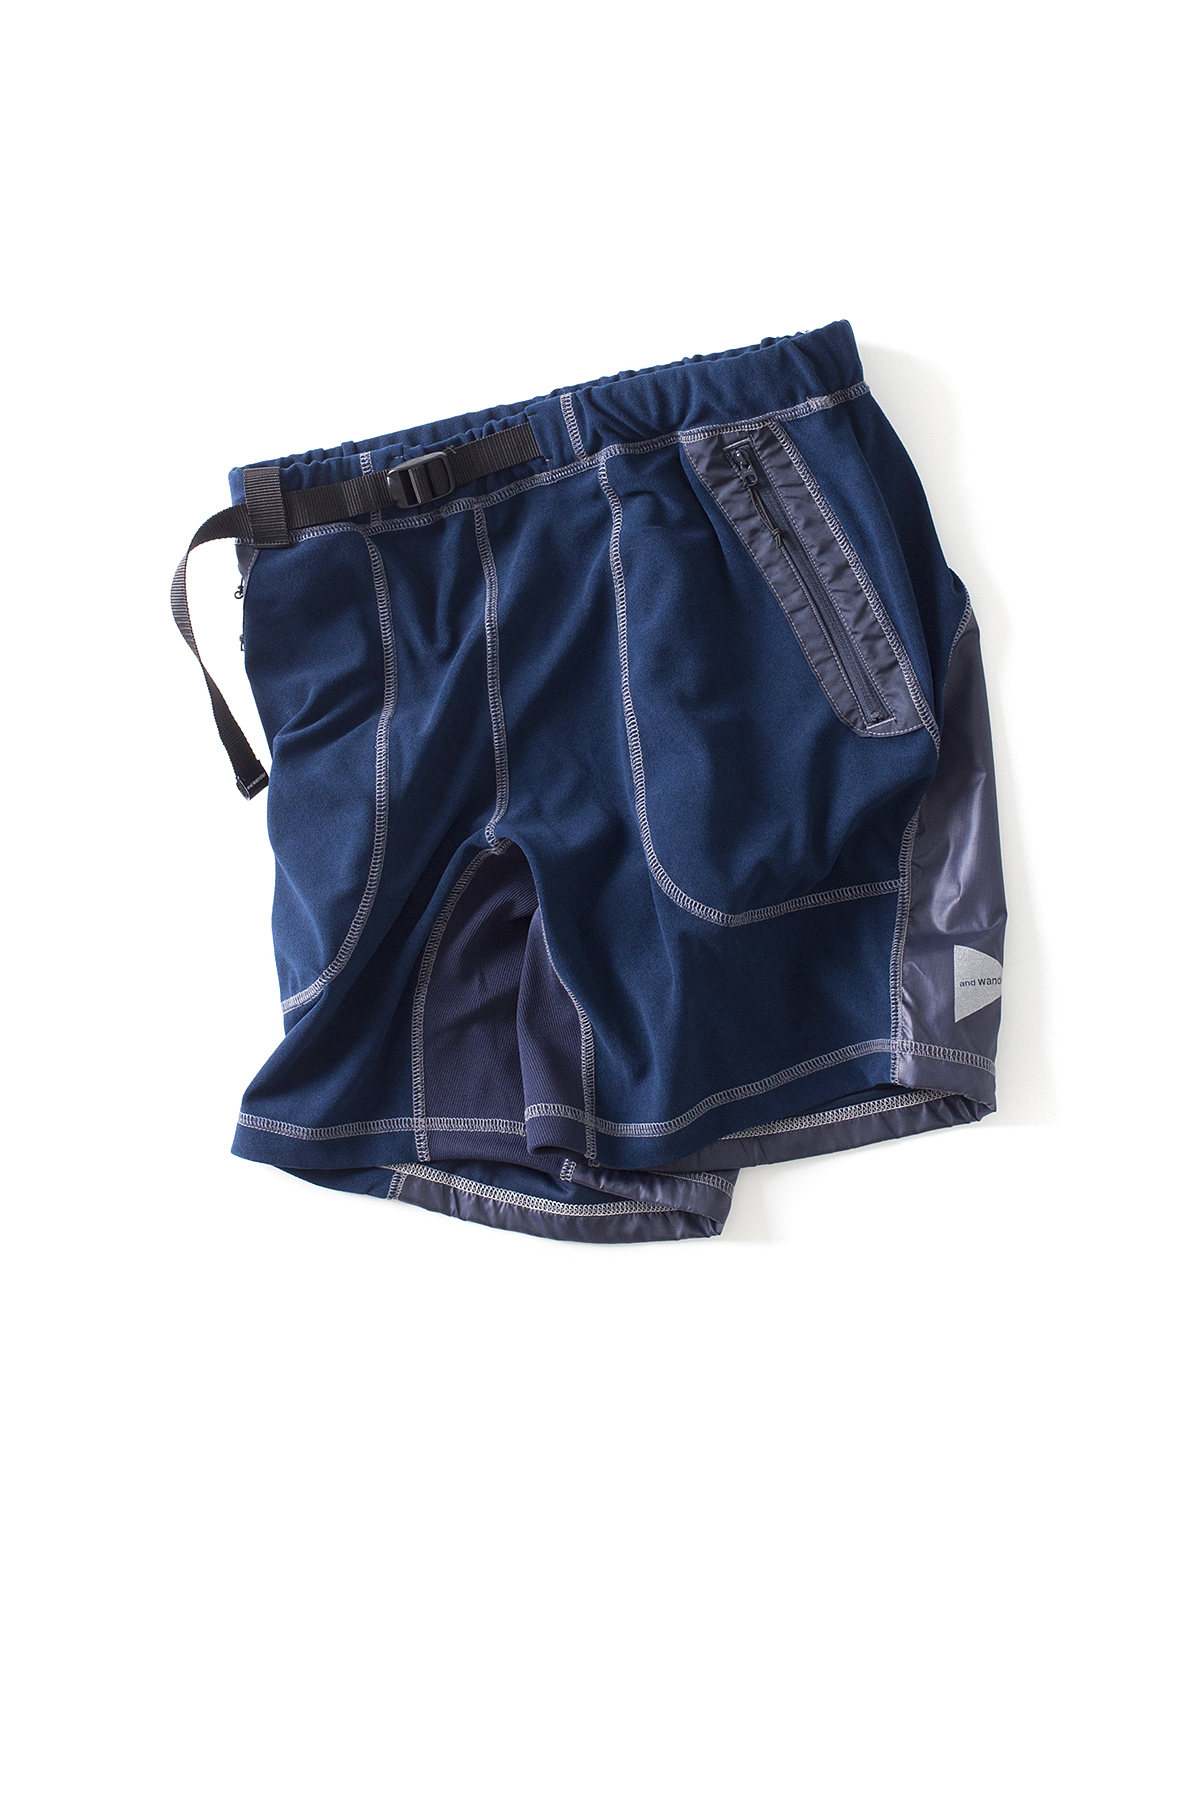 and wander : Mixed Pile Short Pants (Navy)